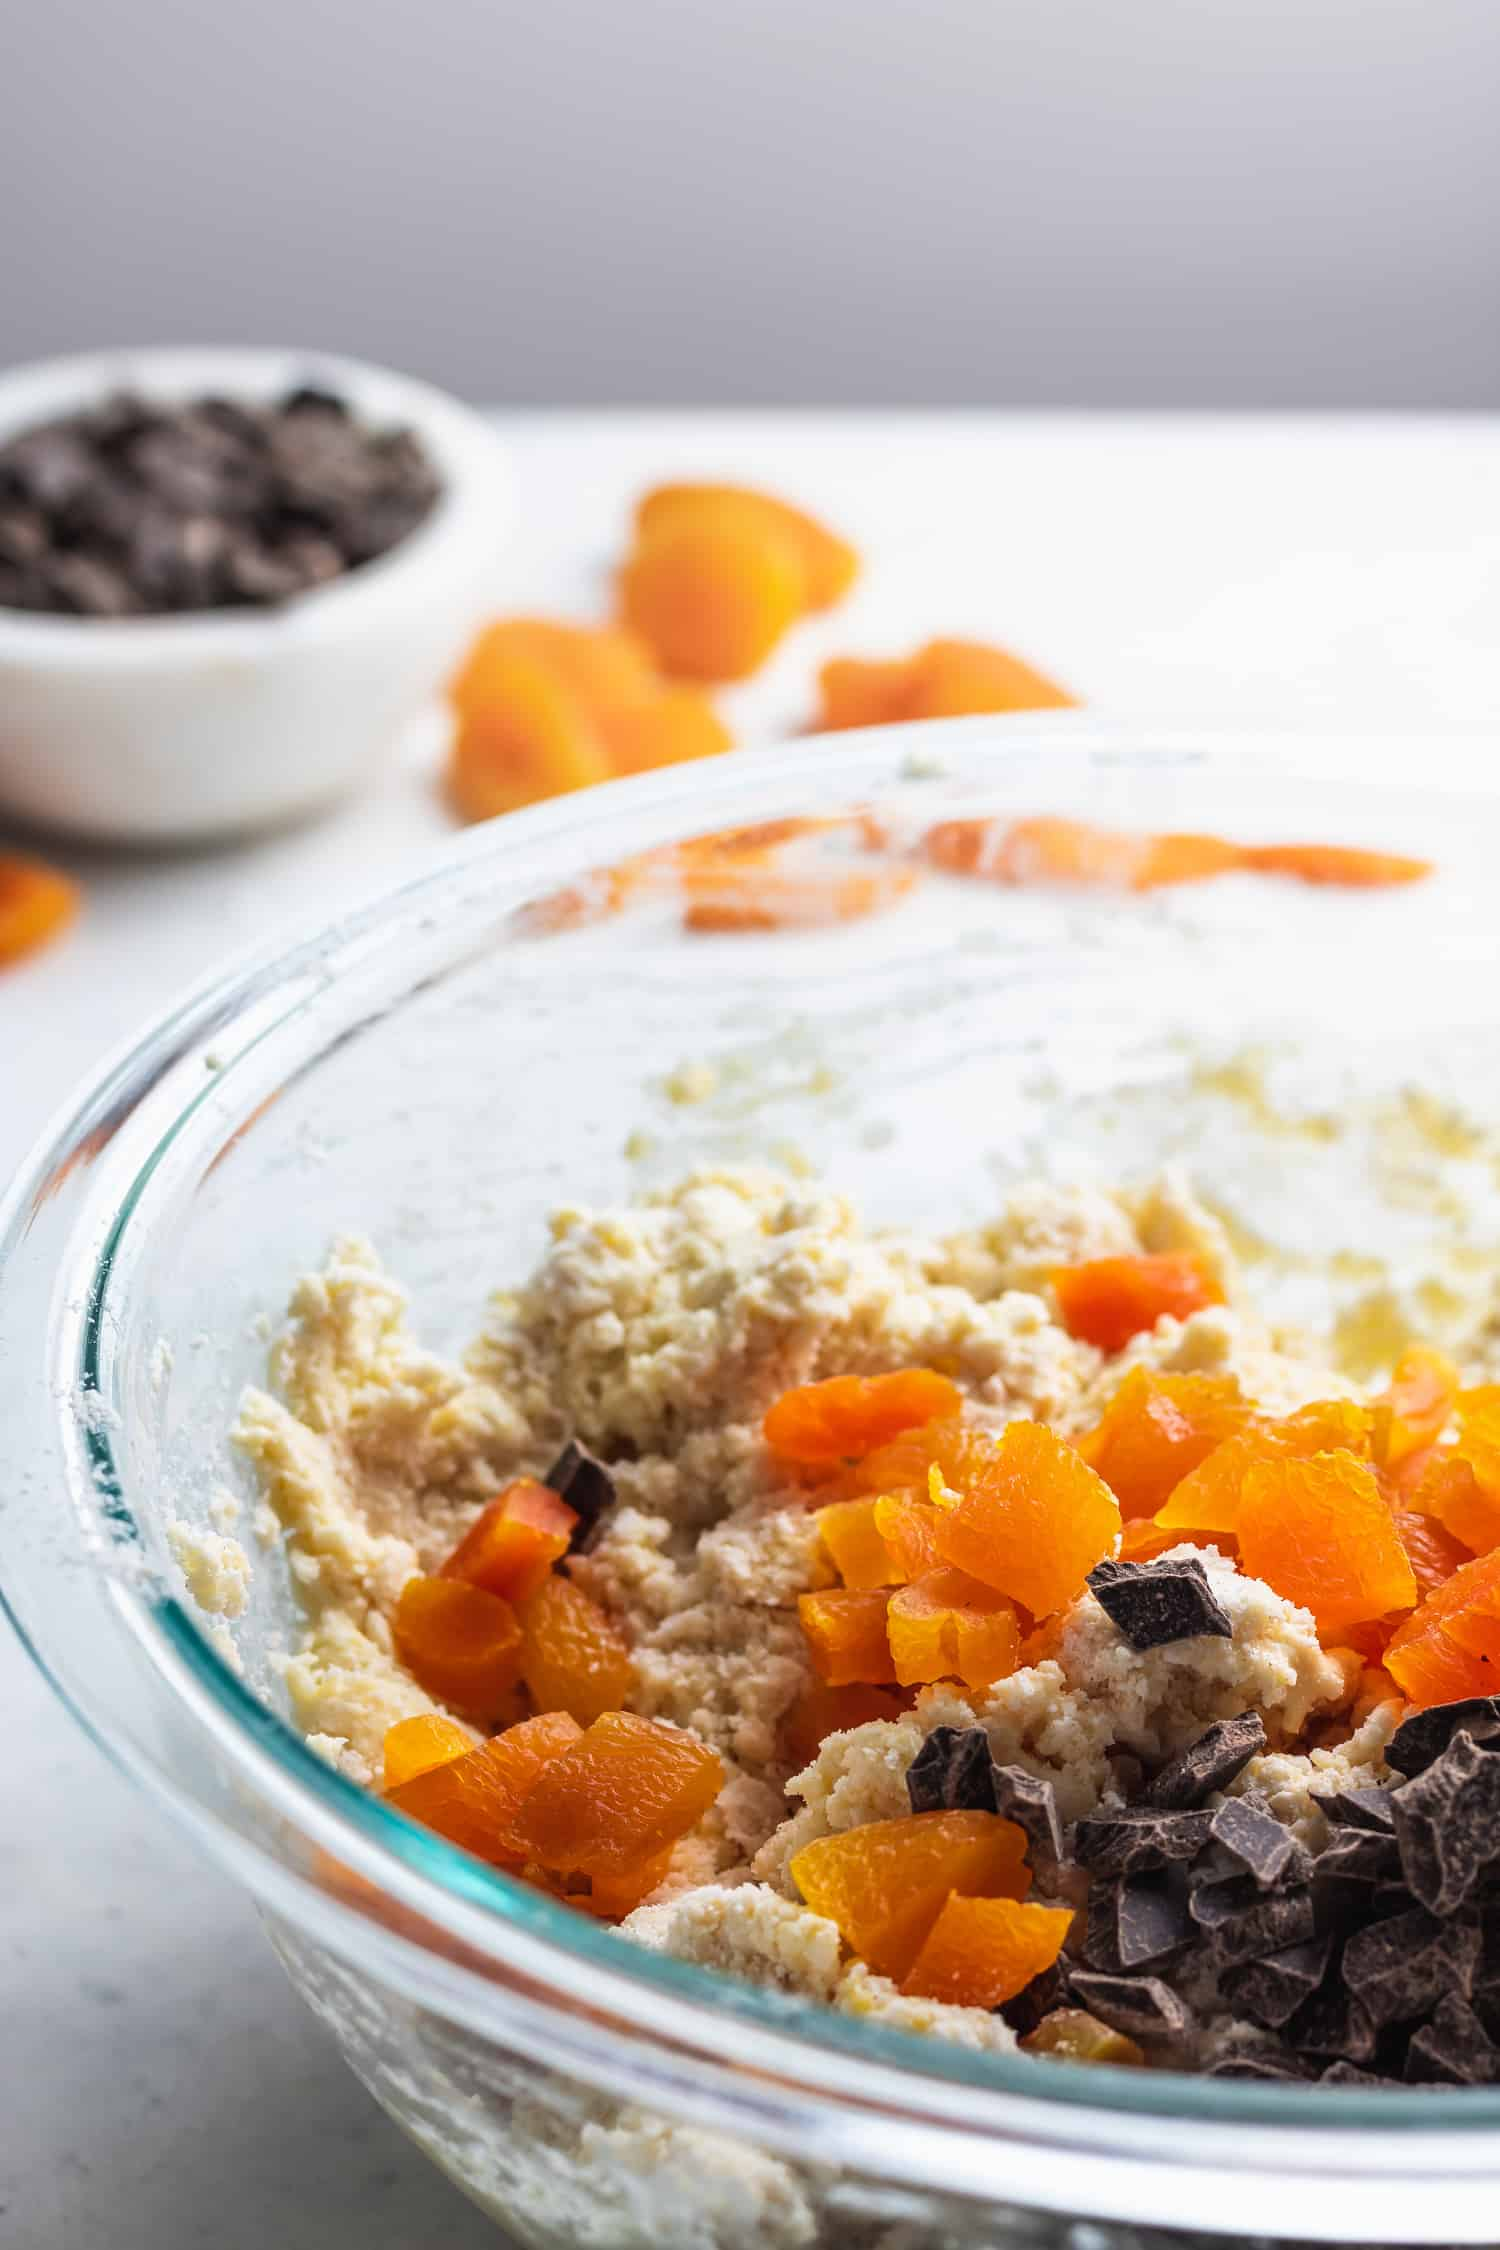 apricots and chocolate chunks added to scone dough in a glass bowl